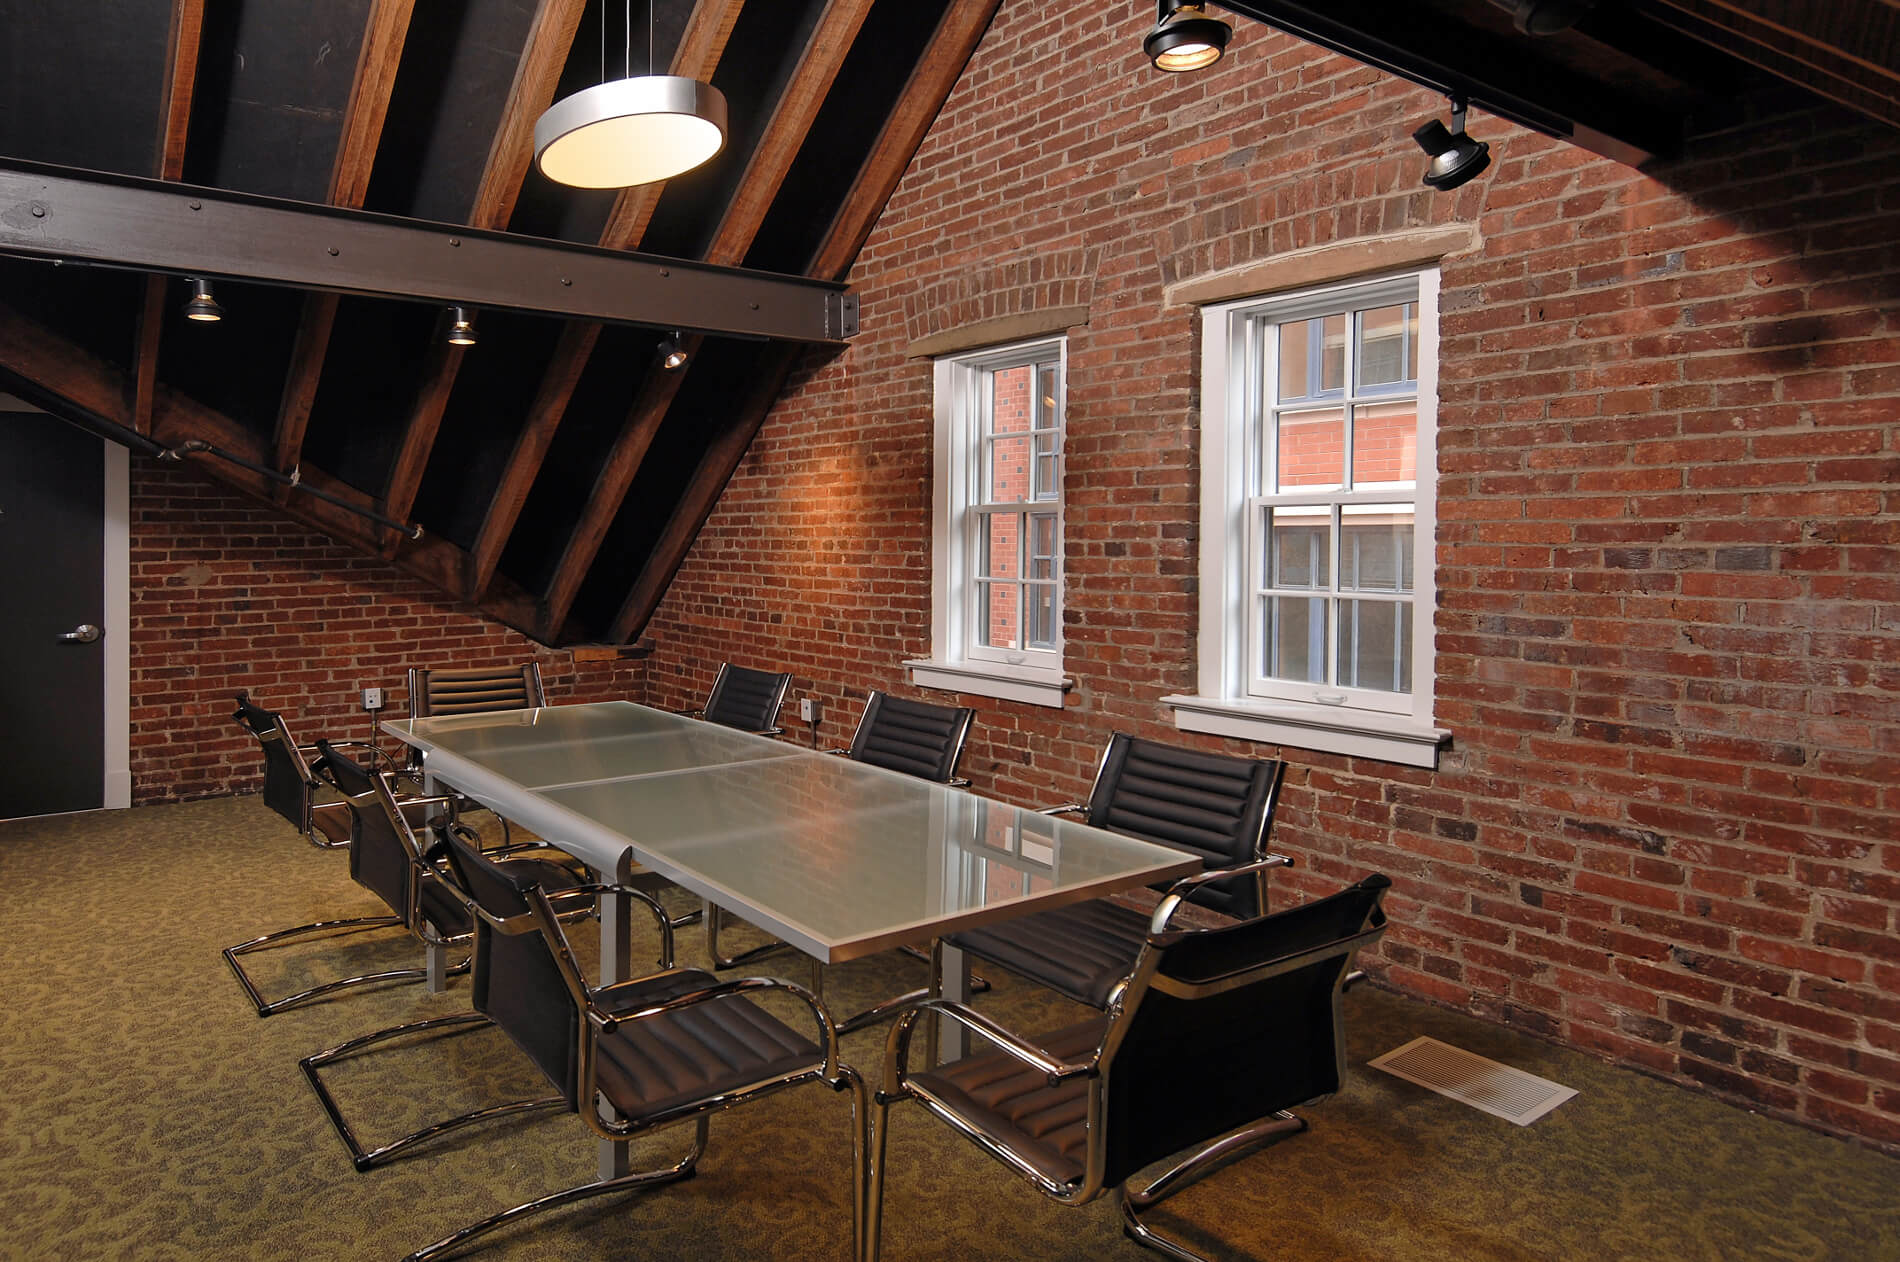 Table with eight chairs in brick room with exposed wooden rafters